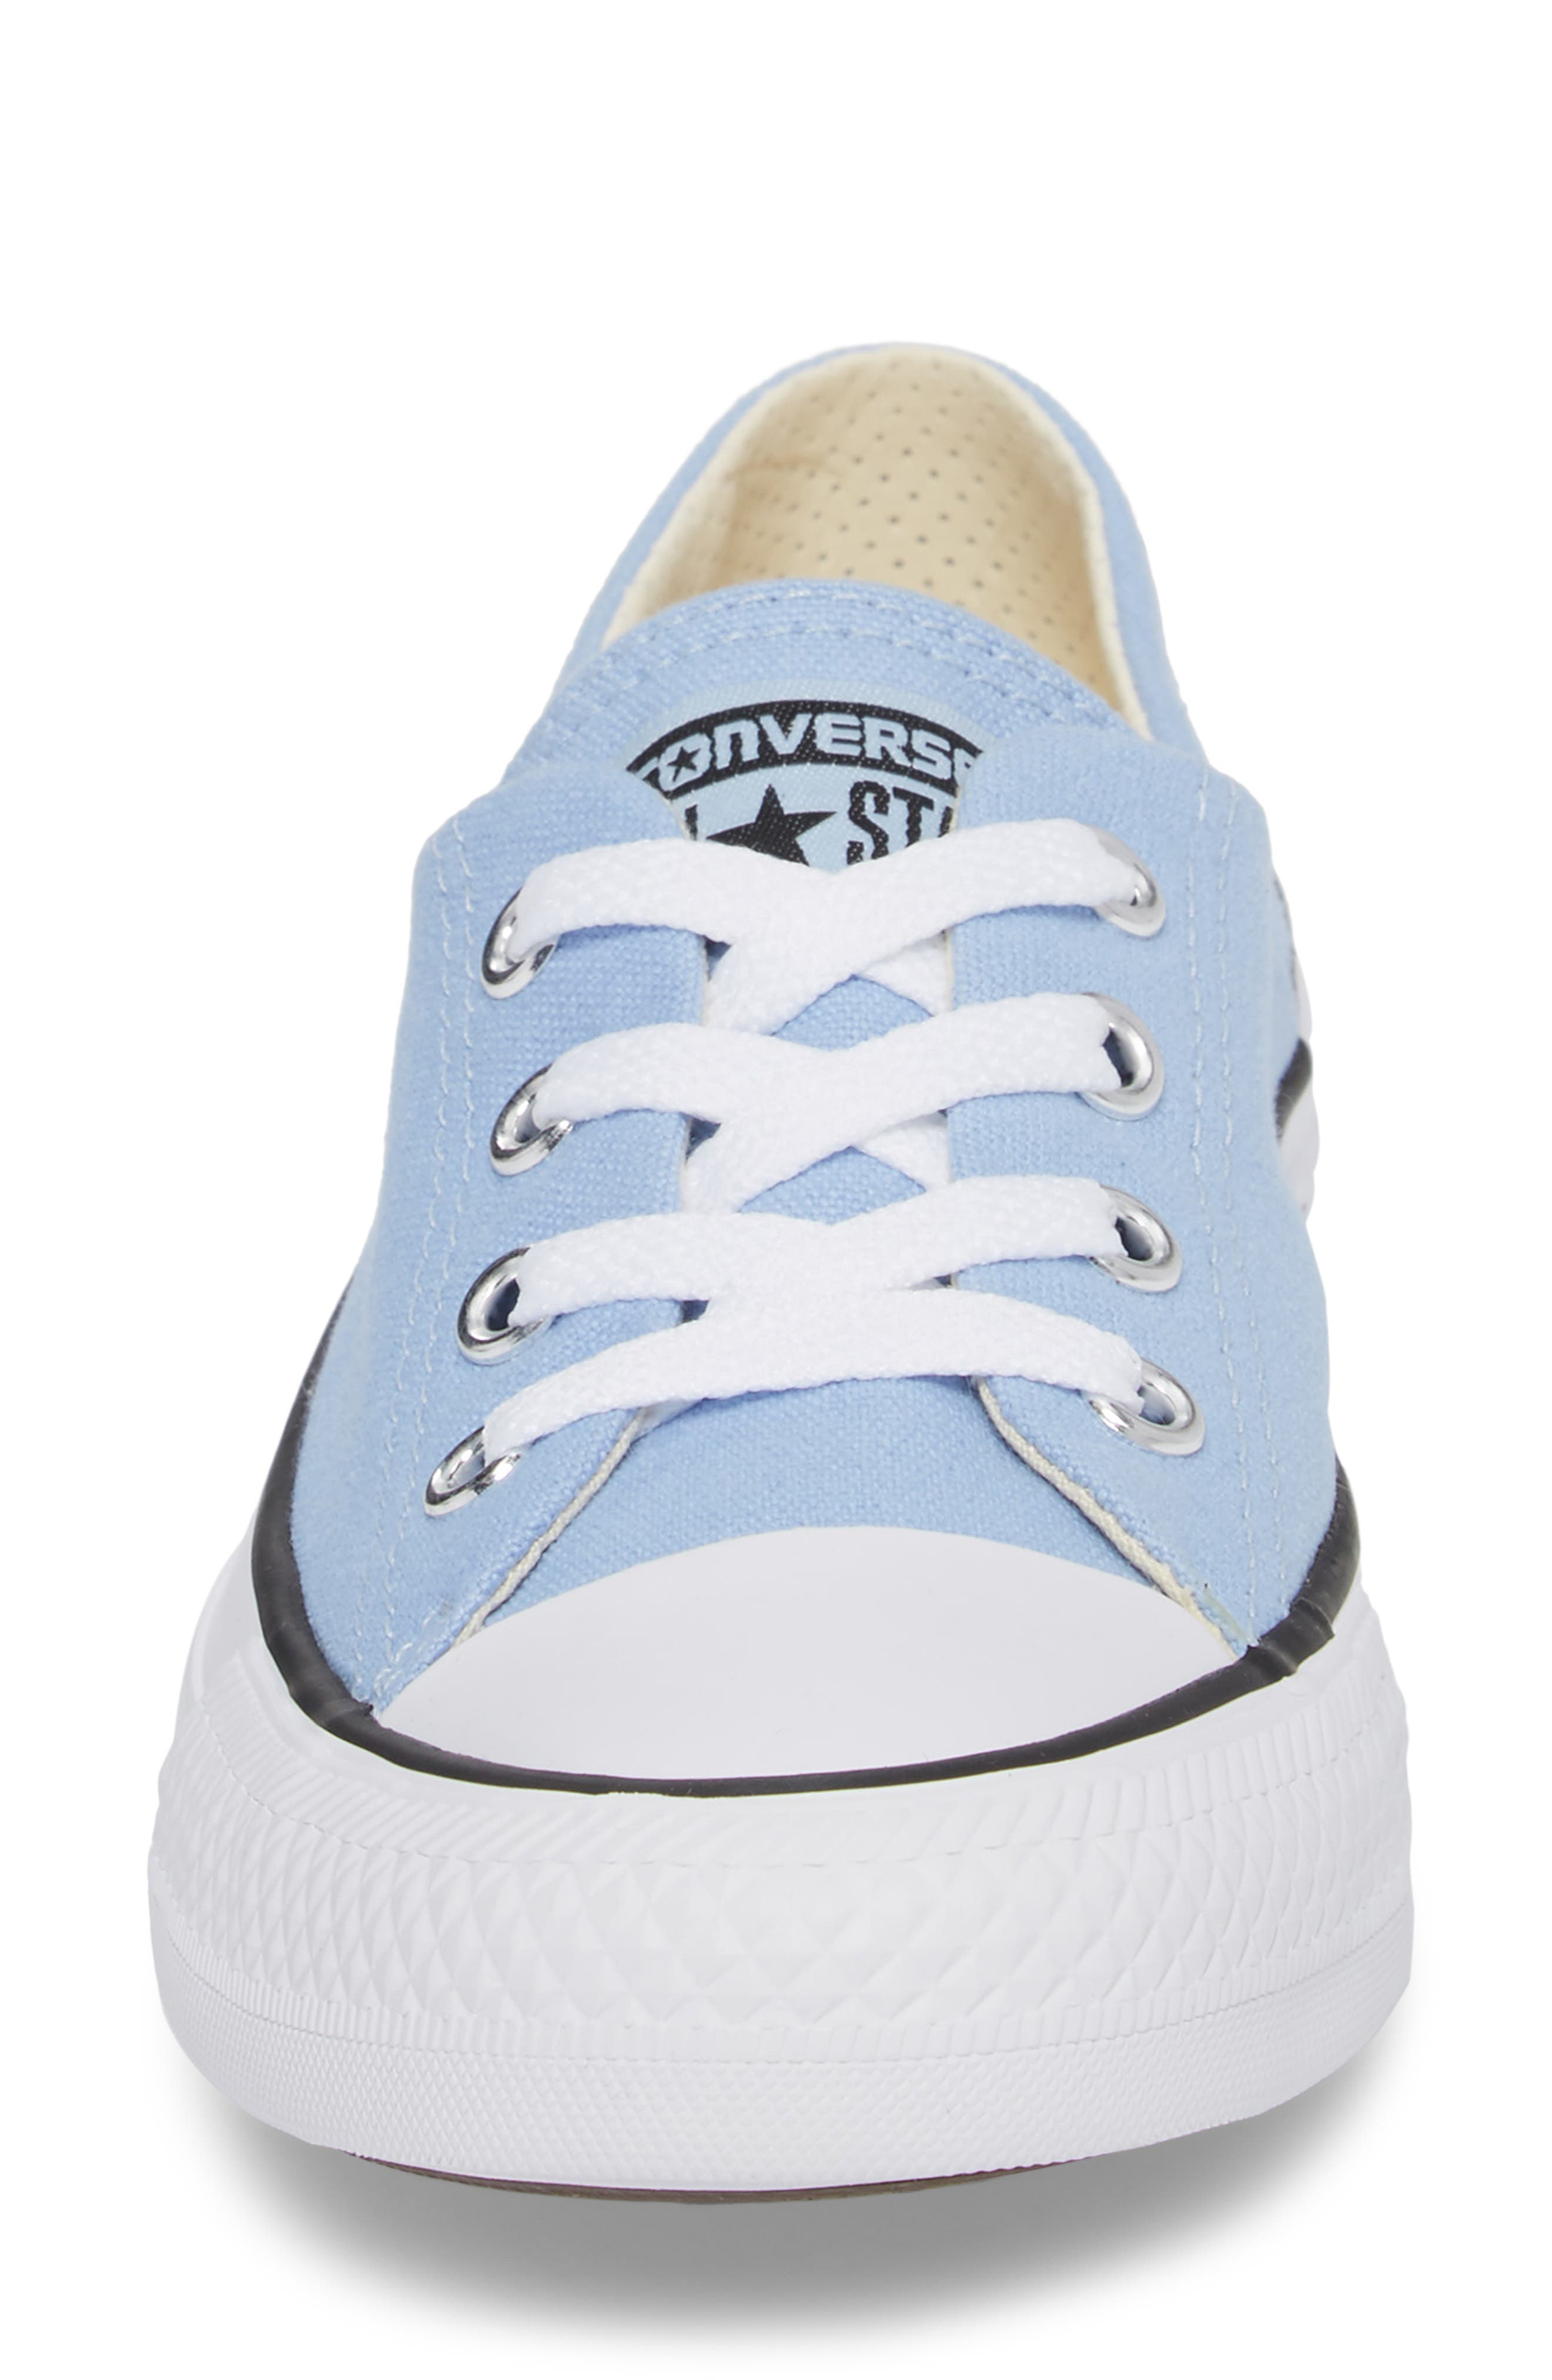 Chuck Taylor<sup>®</sup> All Star<sup>®</sup> Coral Ox Low Top Sneaker,                             Alternate thumbnail 4, color,                             457